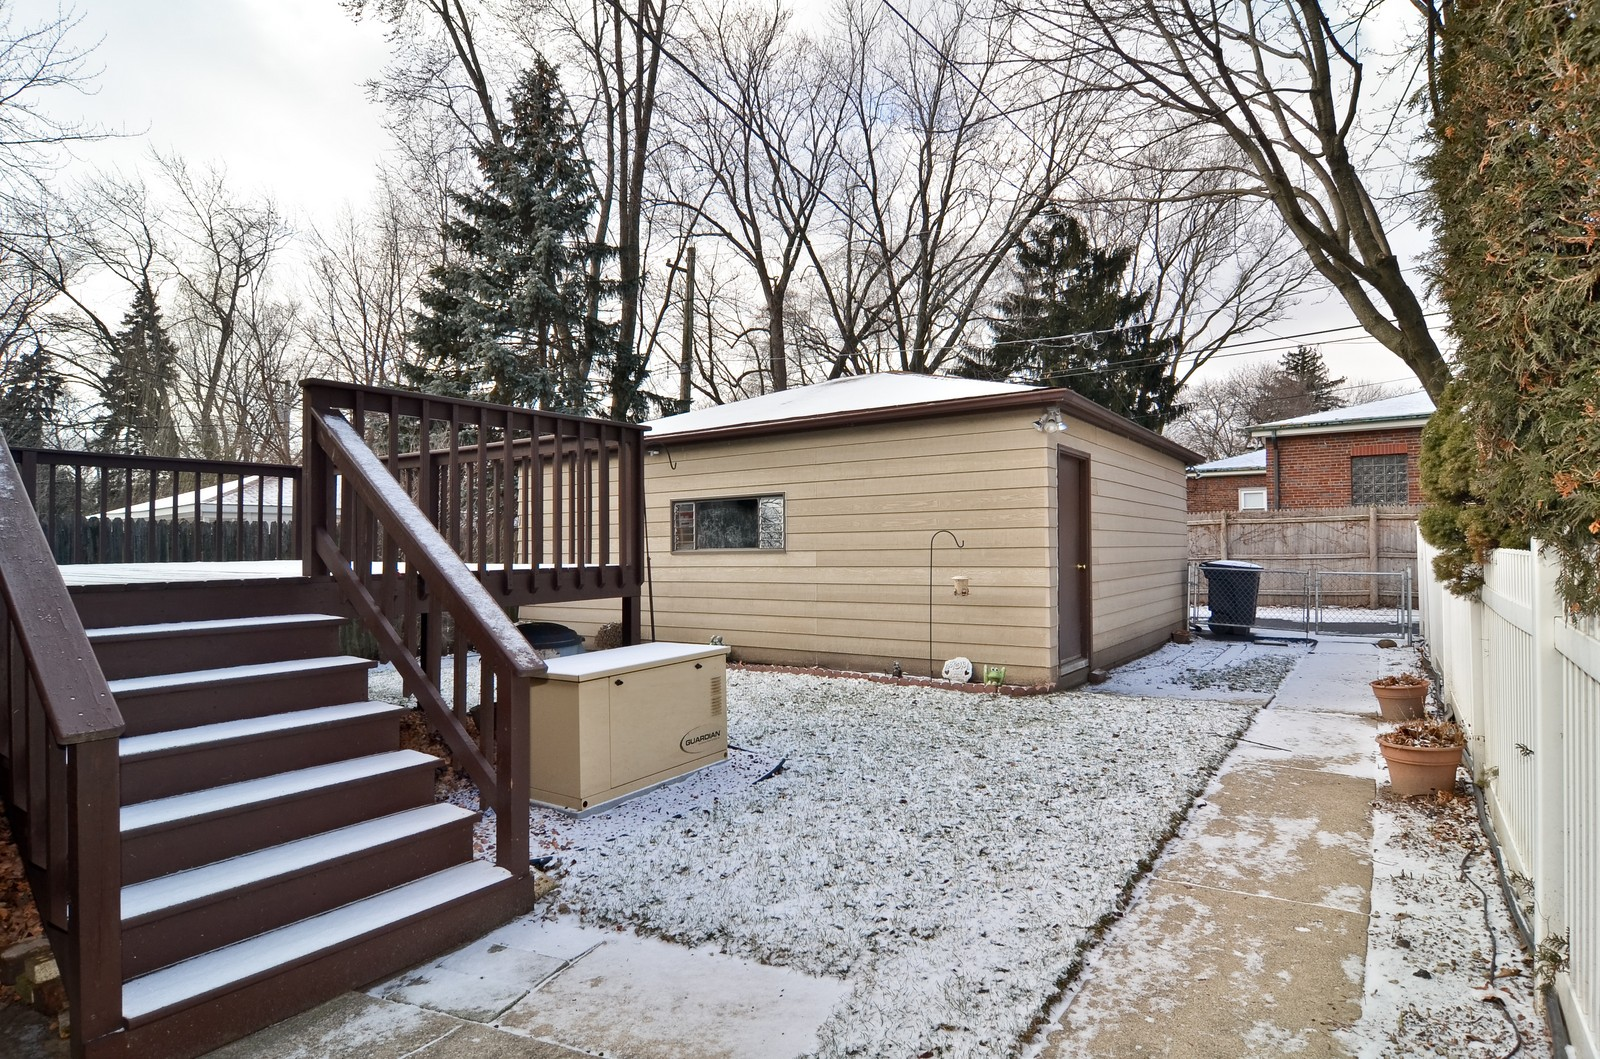 Real Estate Photography - 7070 Mason, Chicago, IL, 60646 - Back Yard